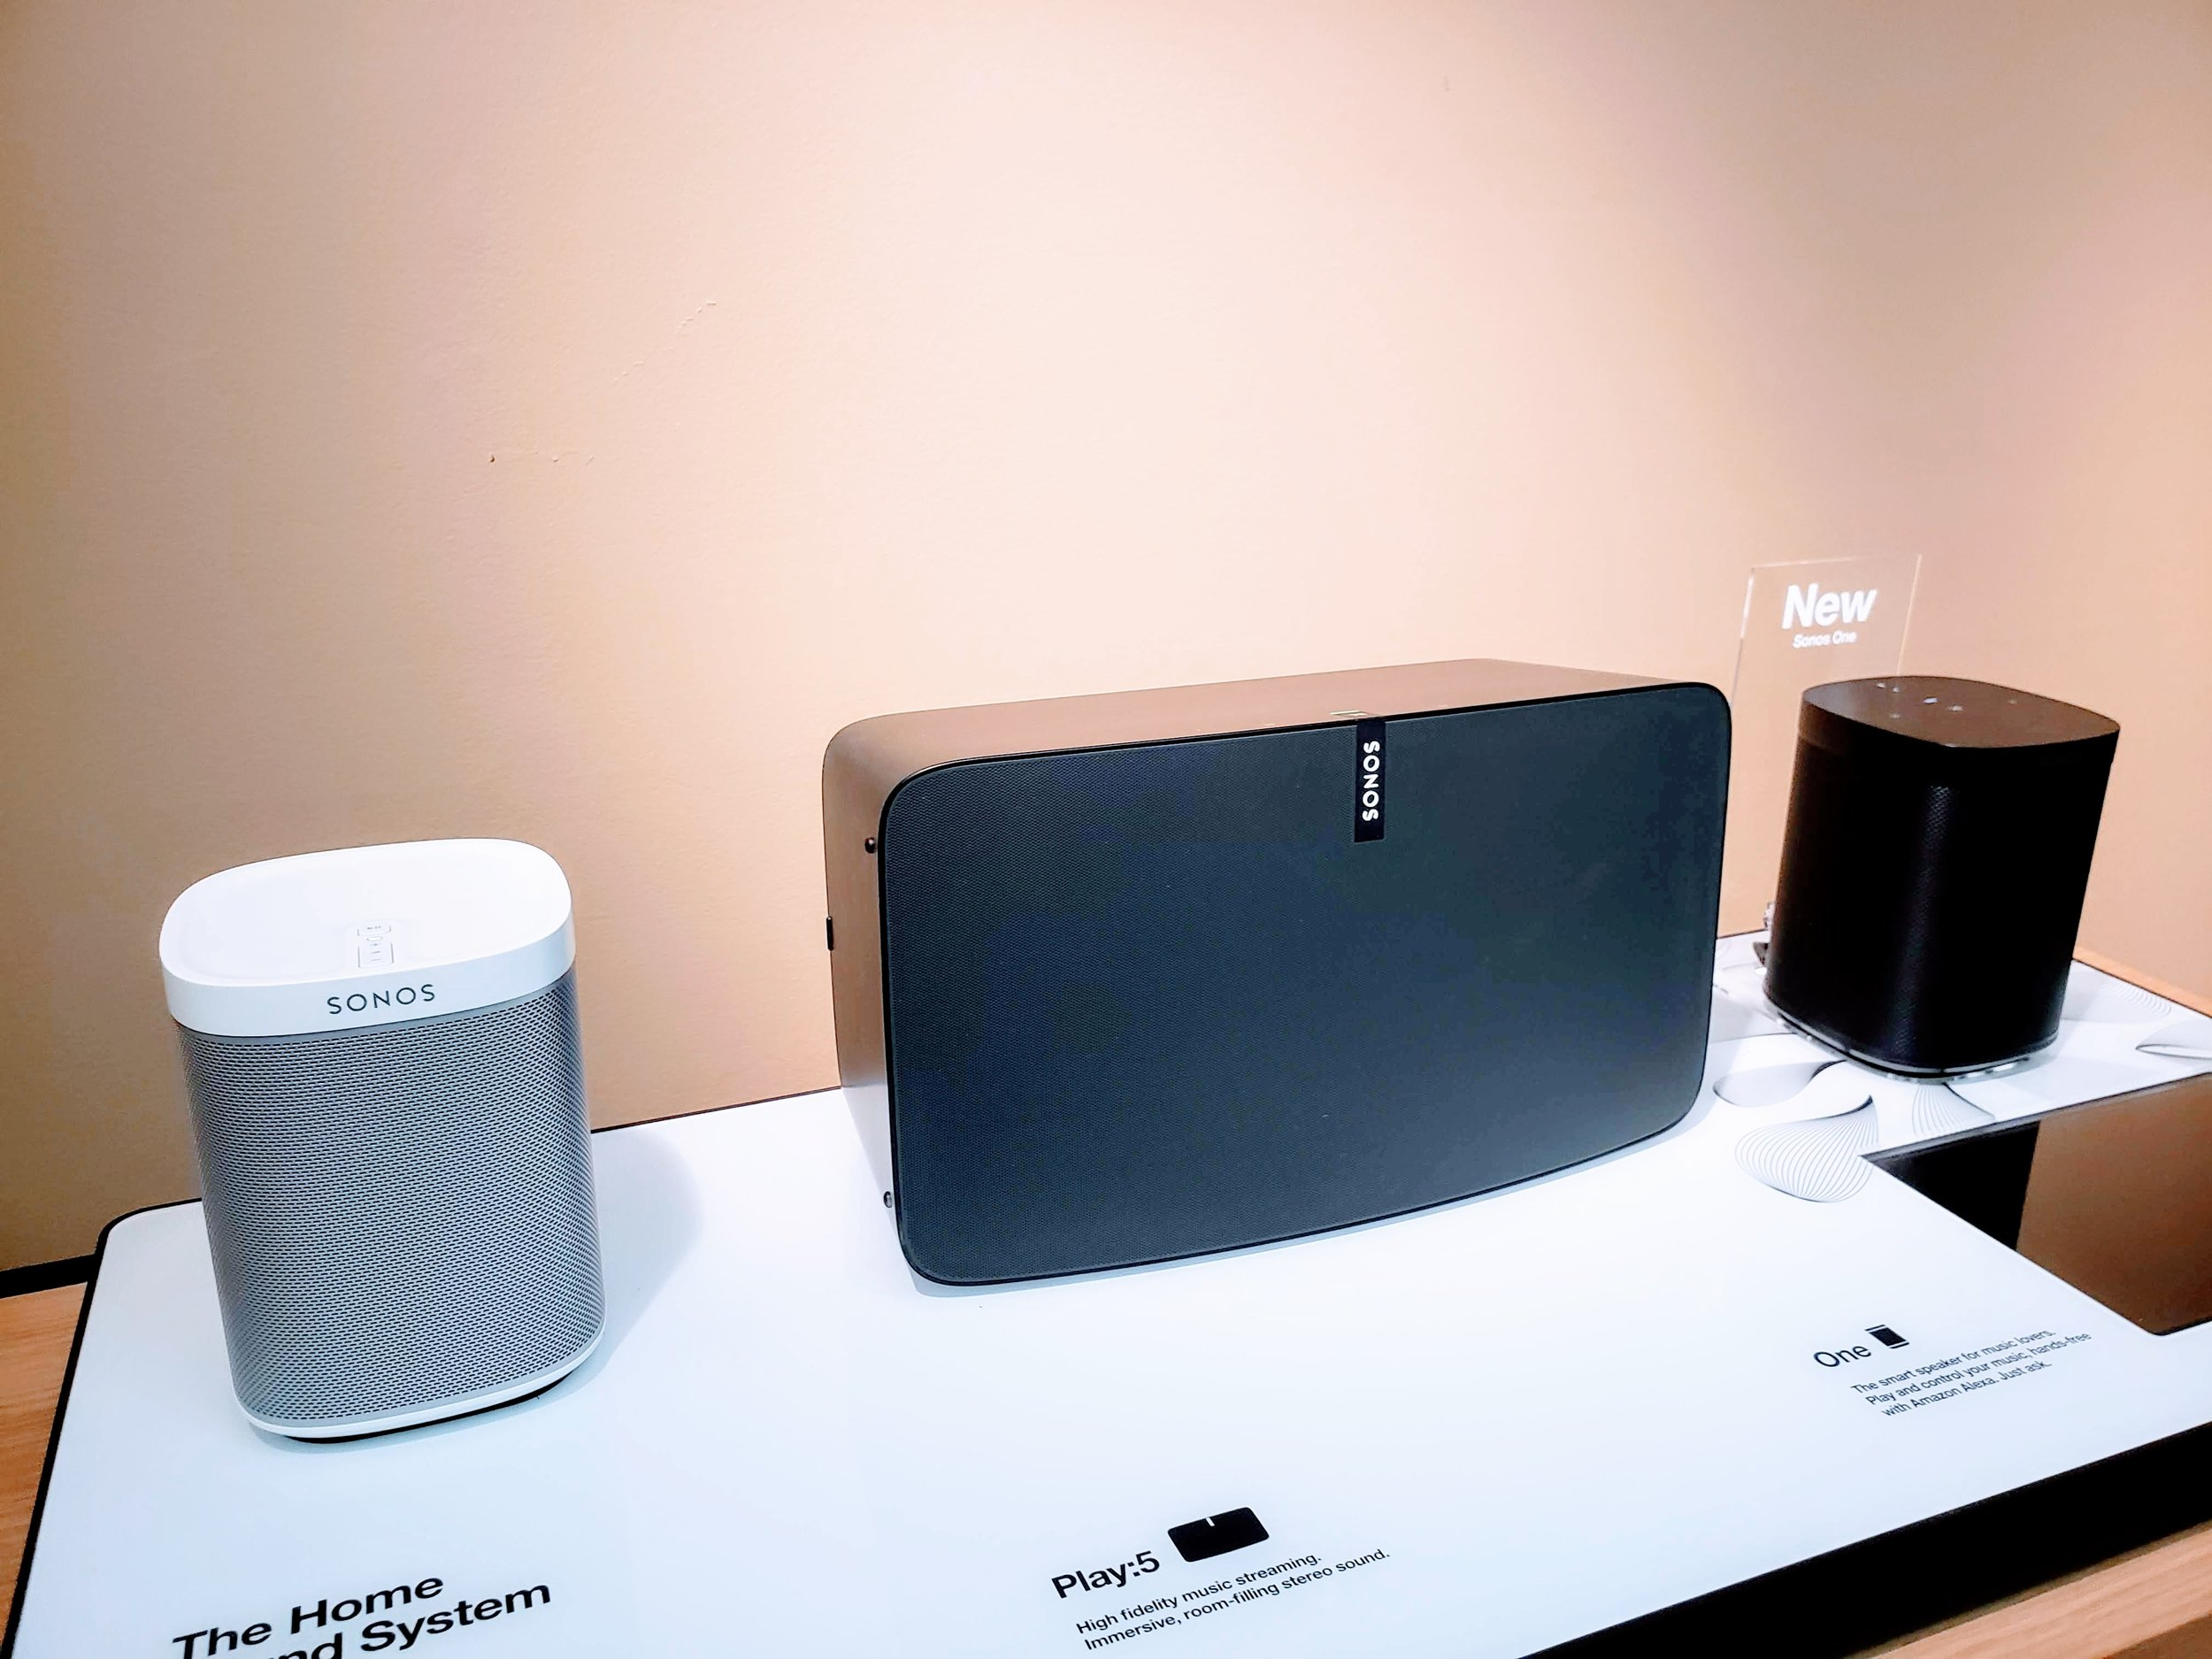 Sonos Play 1 vs Sonos One: Sonos Play 1 on left, Sonos One on Right.